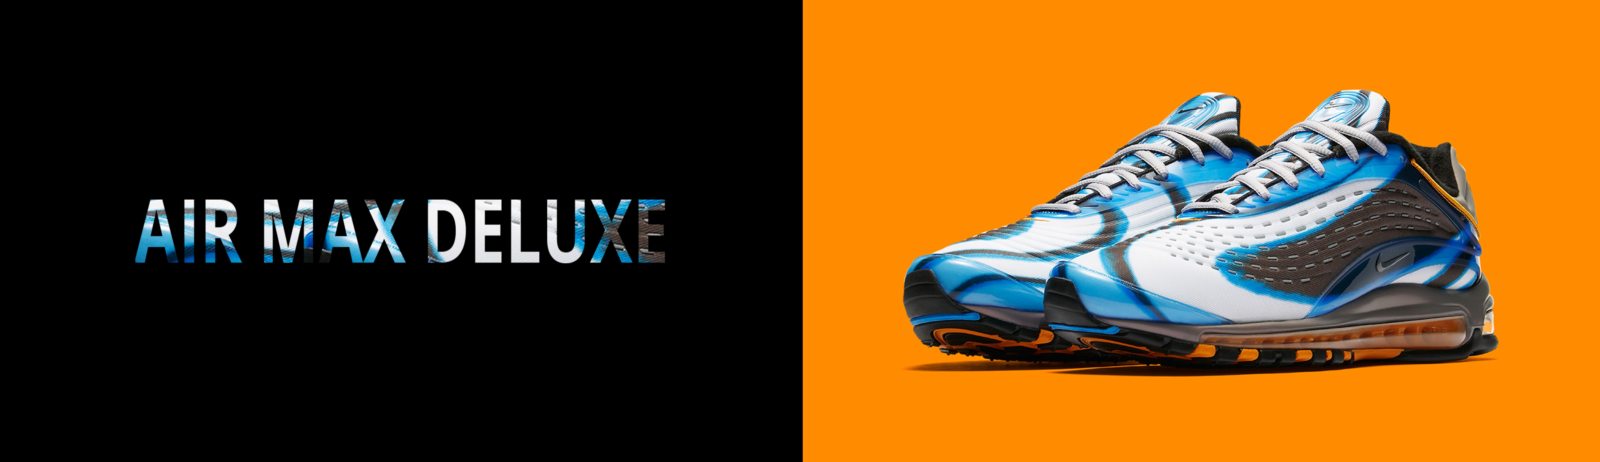 Women's Nike Air Max Deluxe Trainers